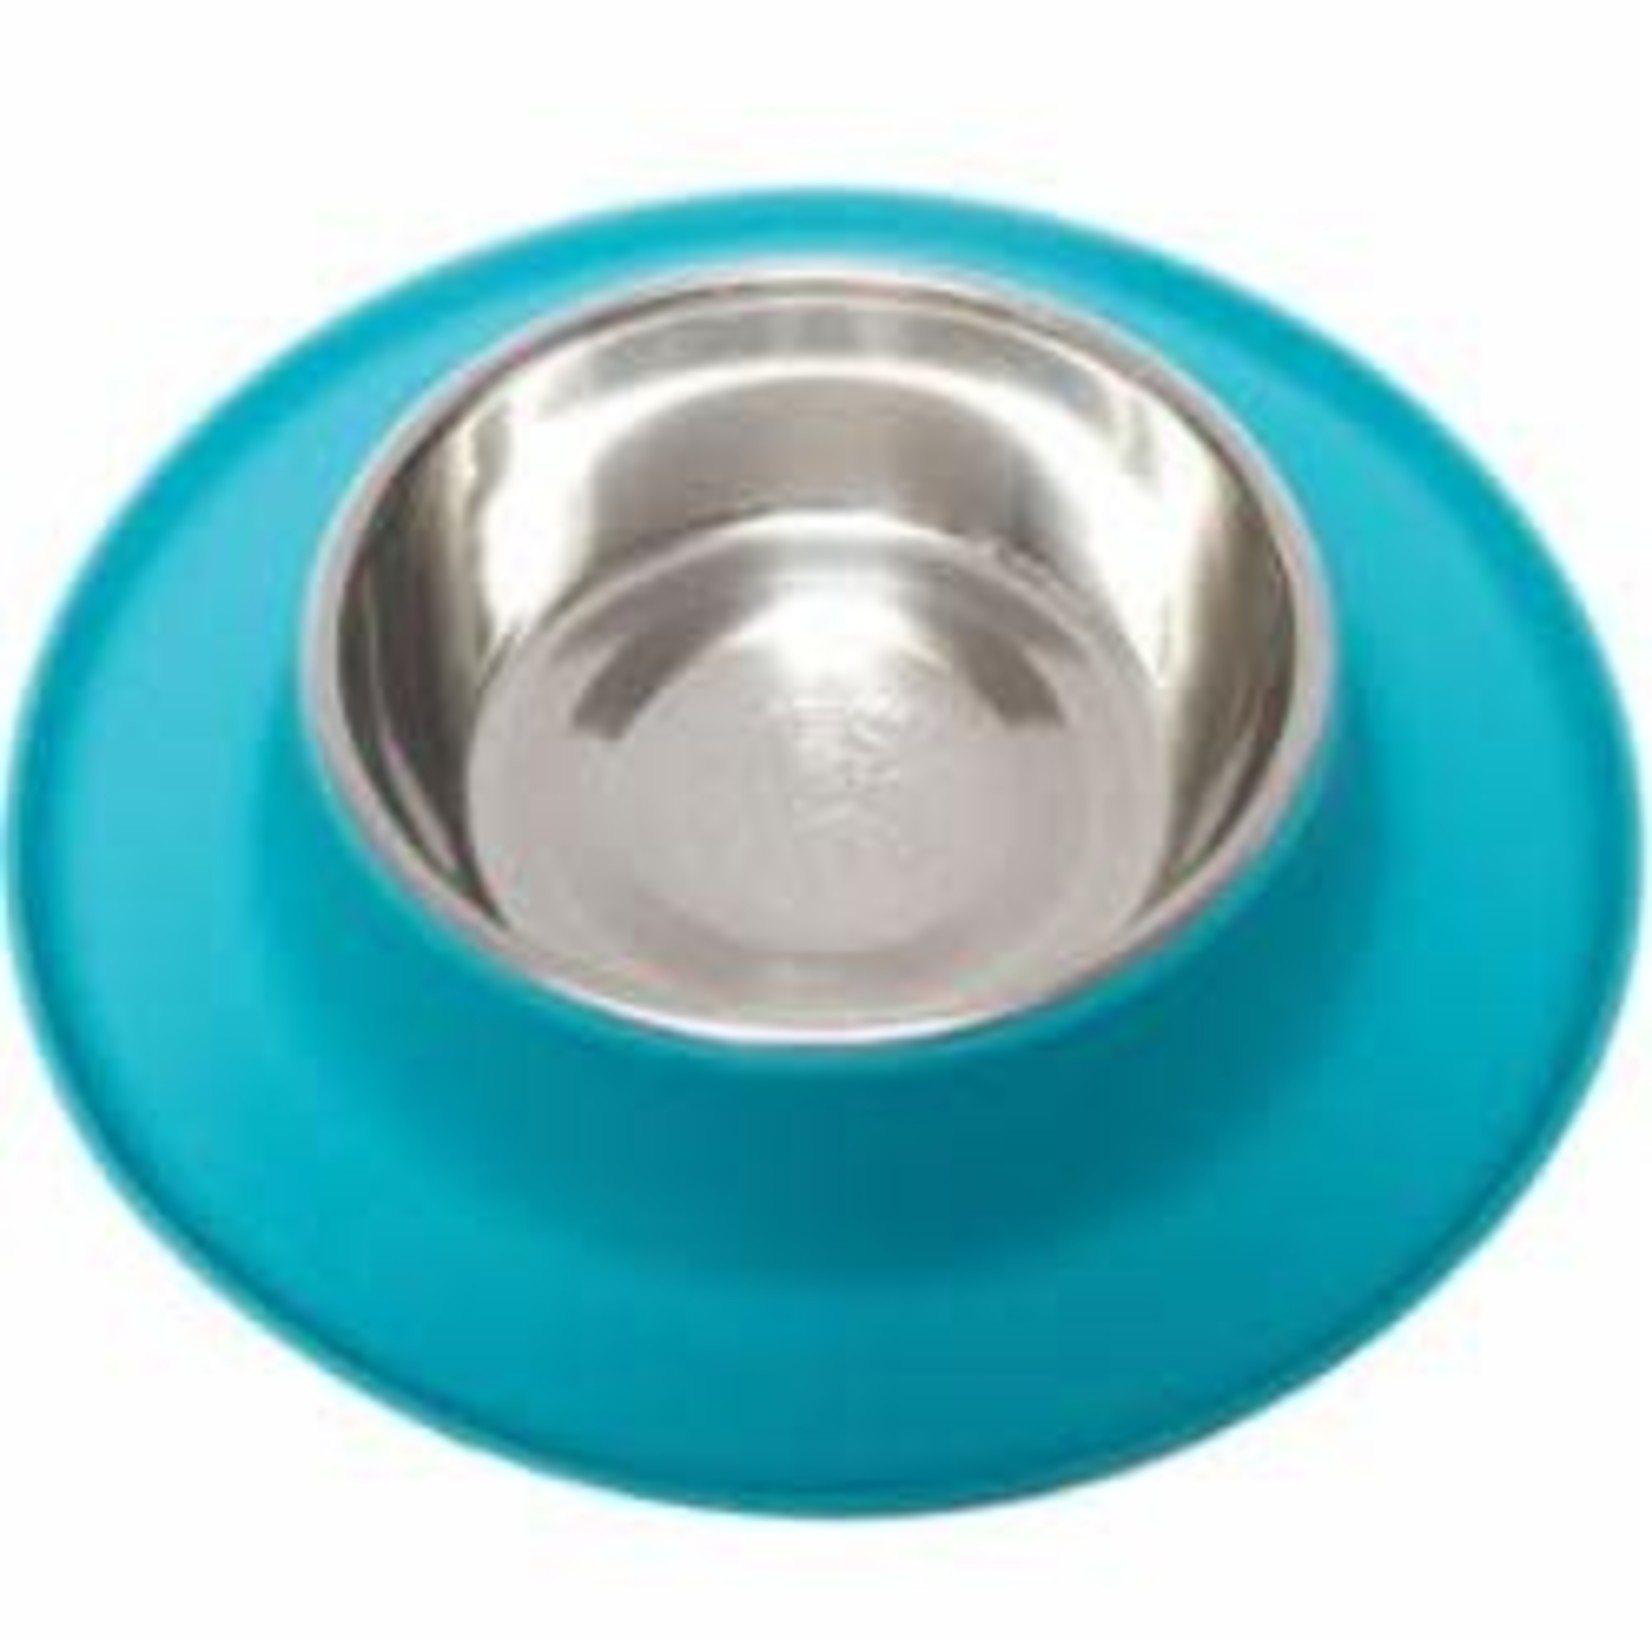 Messy Mutts Messy Mutts Dog Silicone Feeder Blue 6 CUP